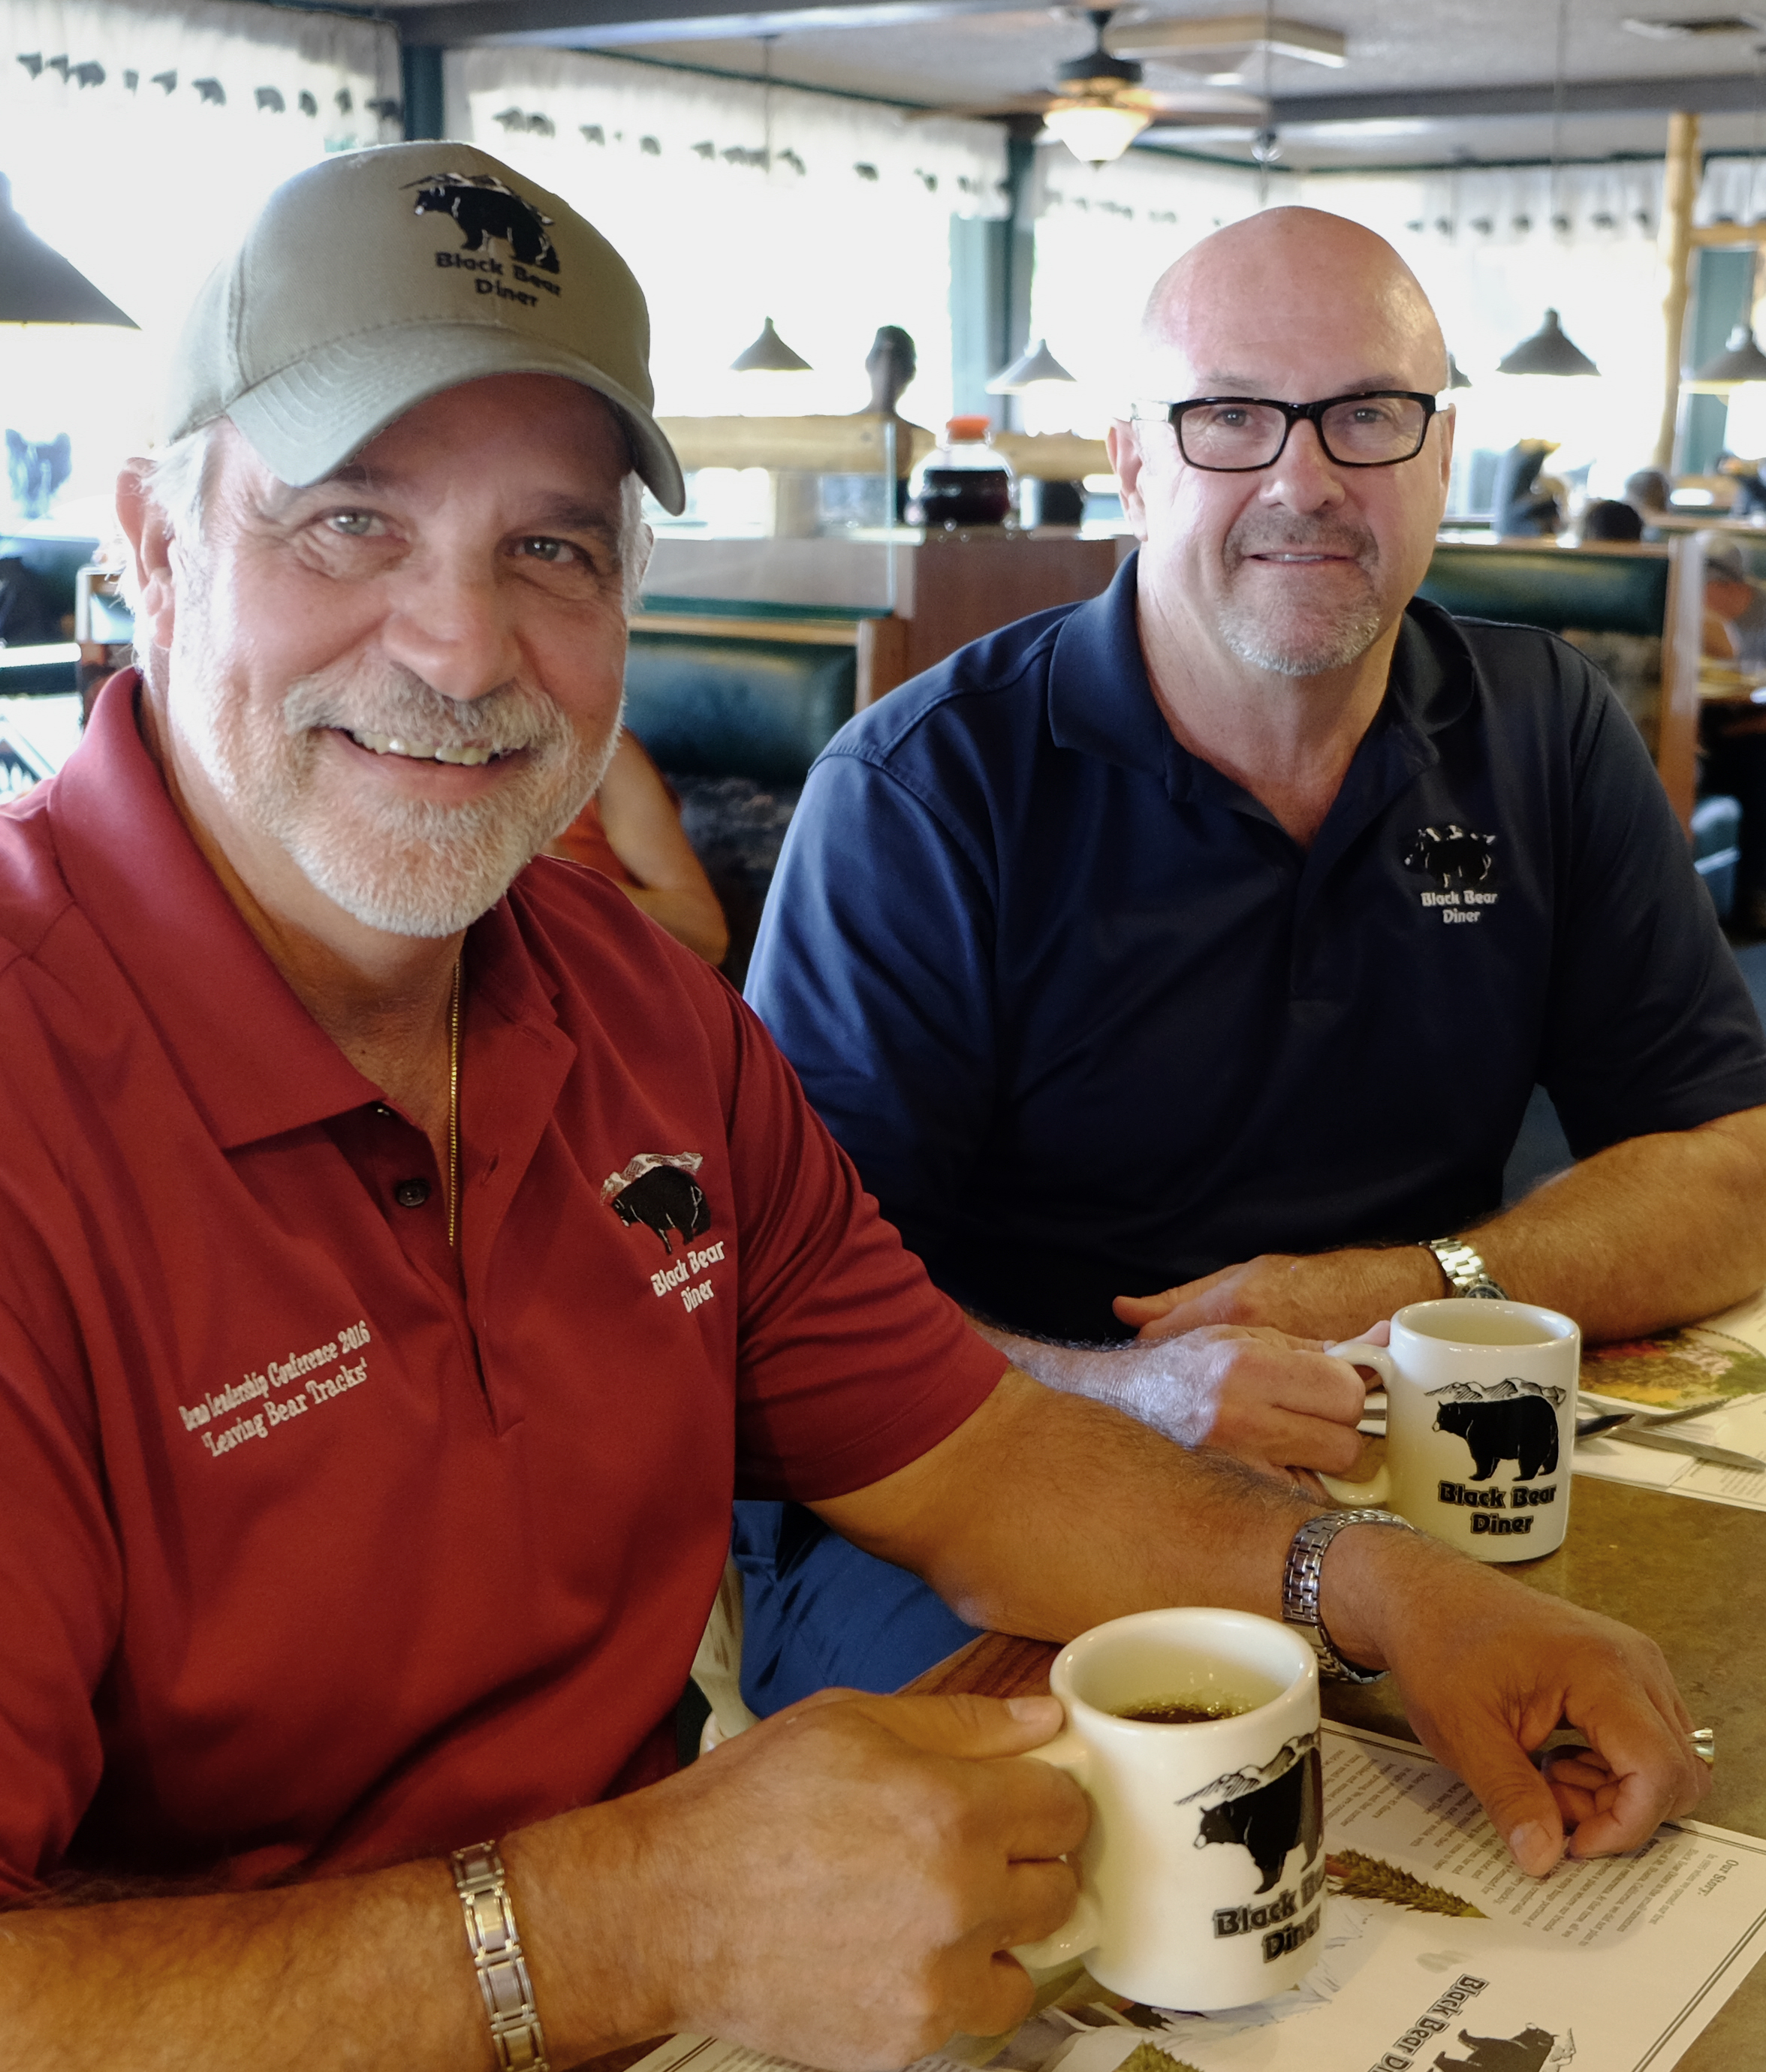 The Black Bear Diner Founders